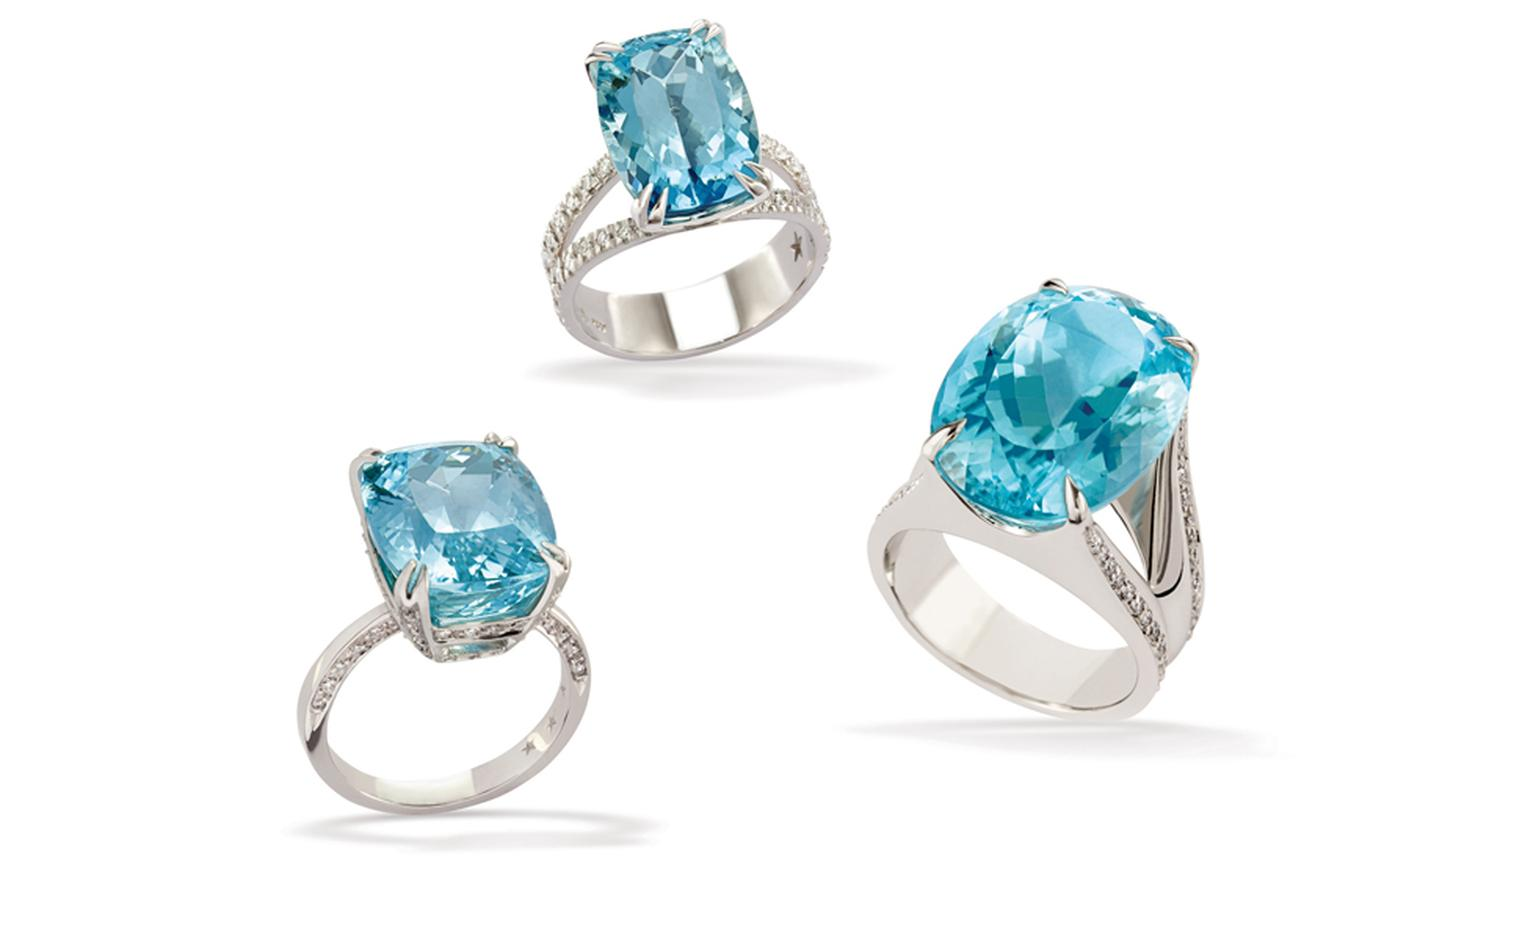 H.STERN. Paraiba Tourmaline Rings.  Price from £116,000 to £307,000